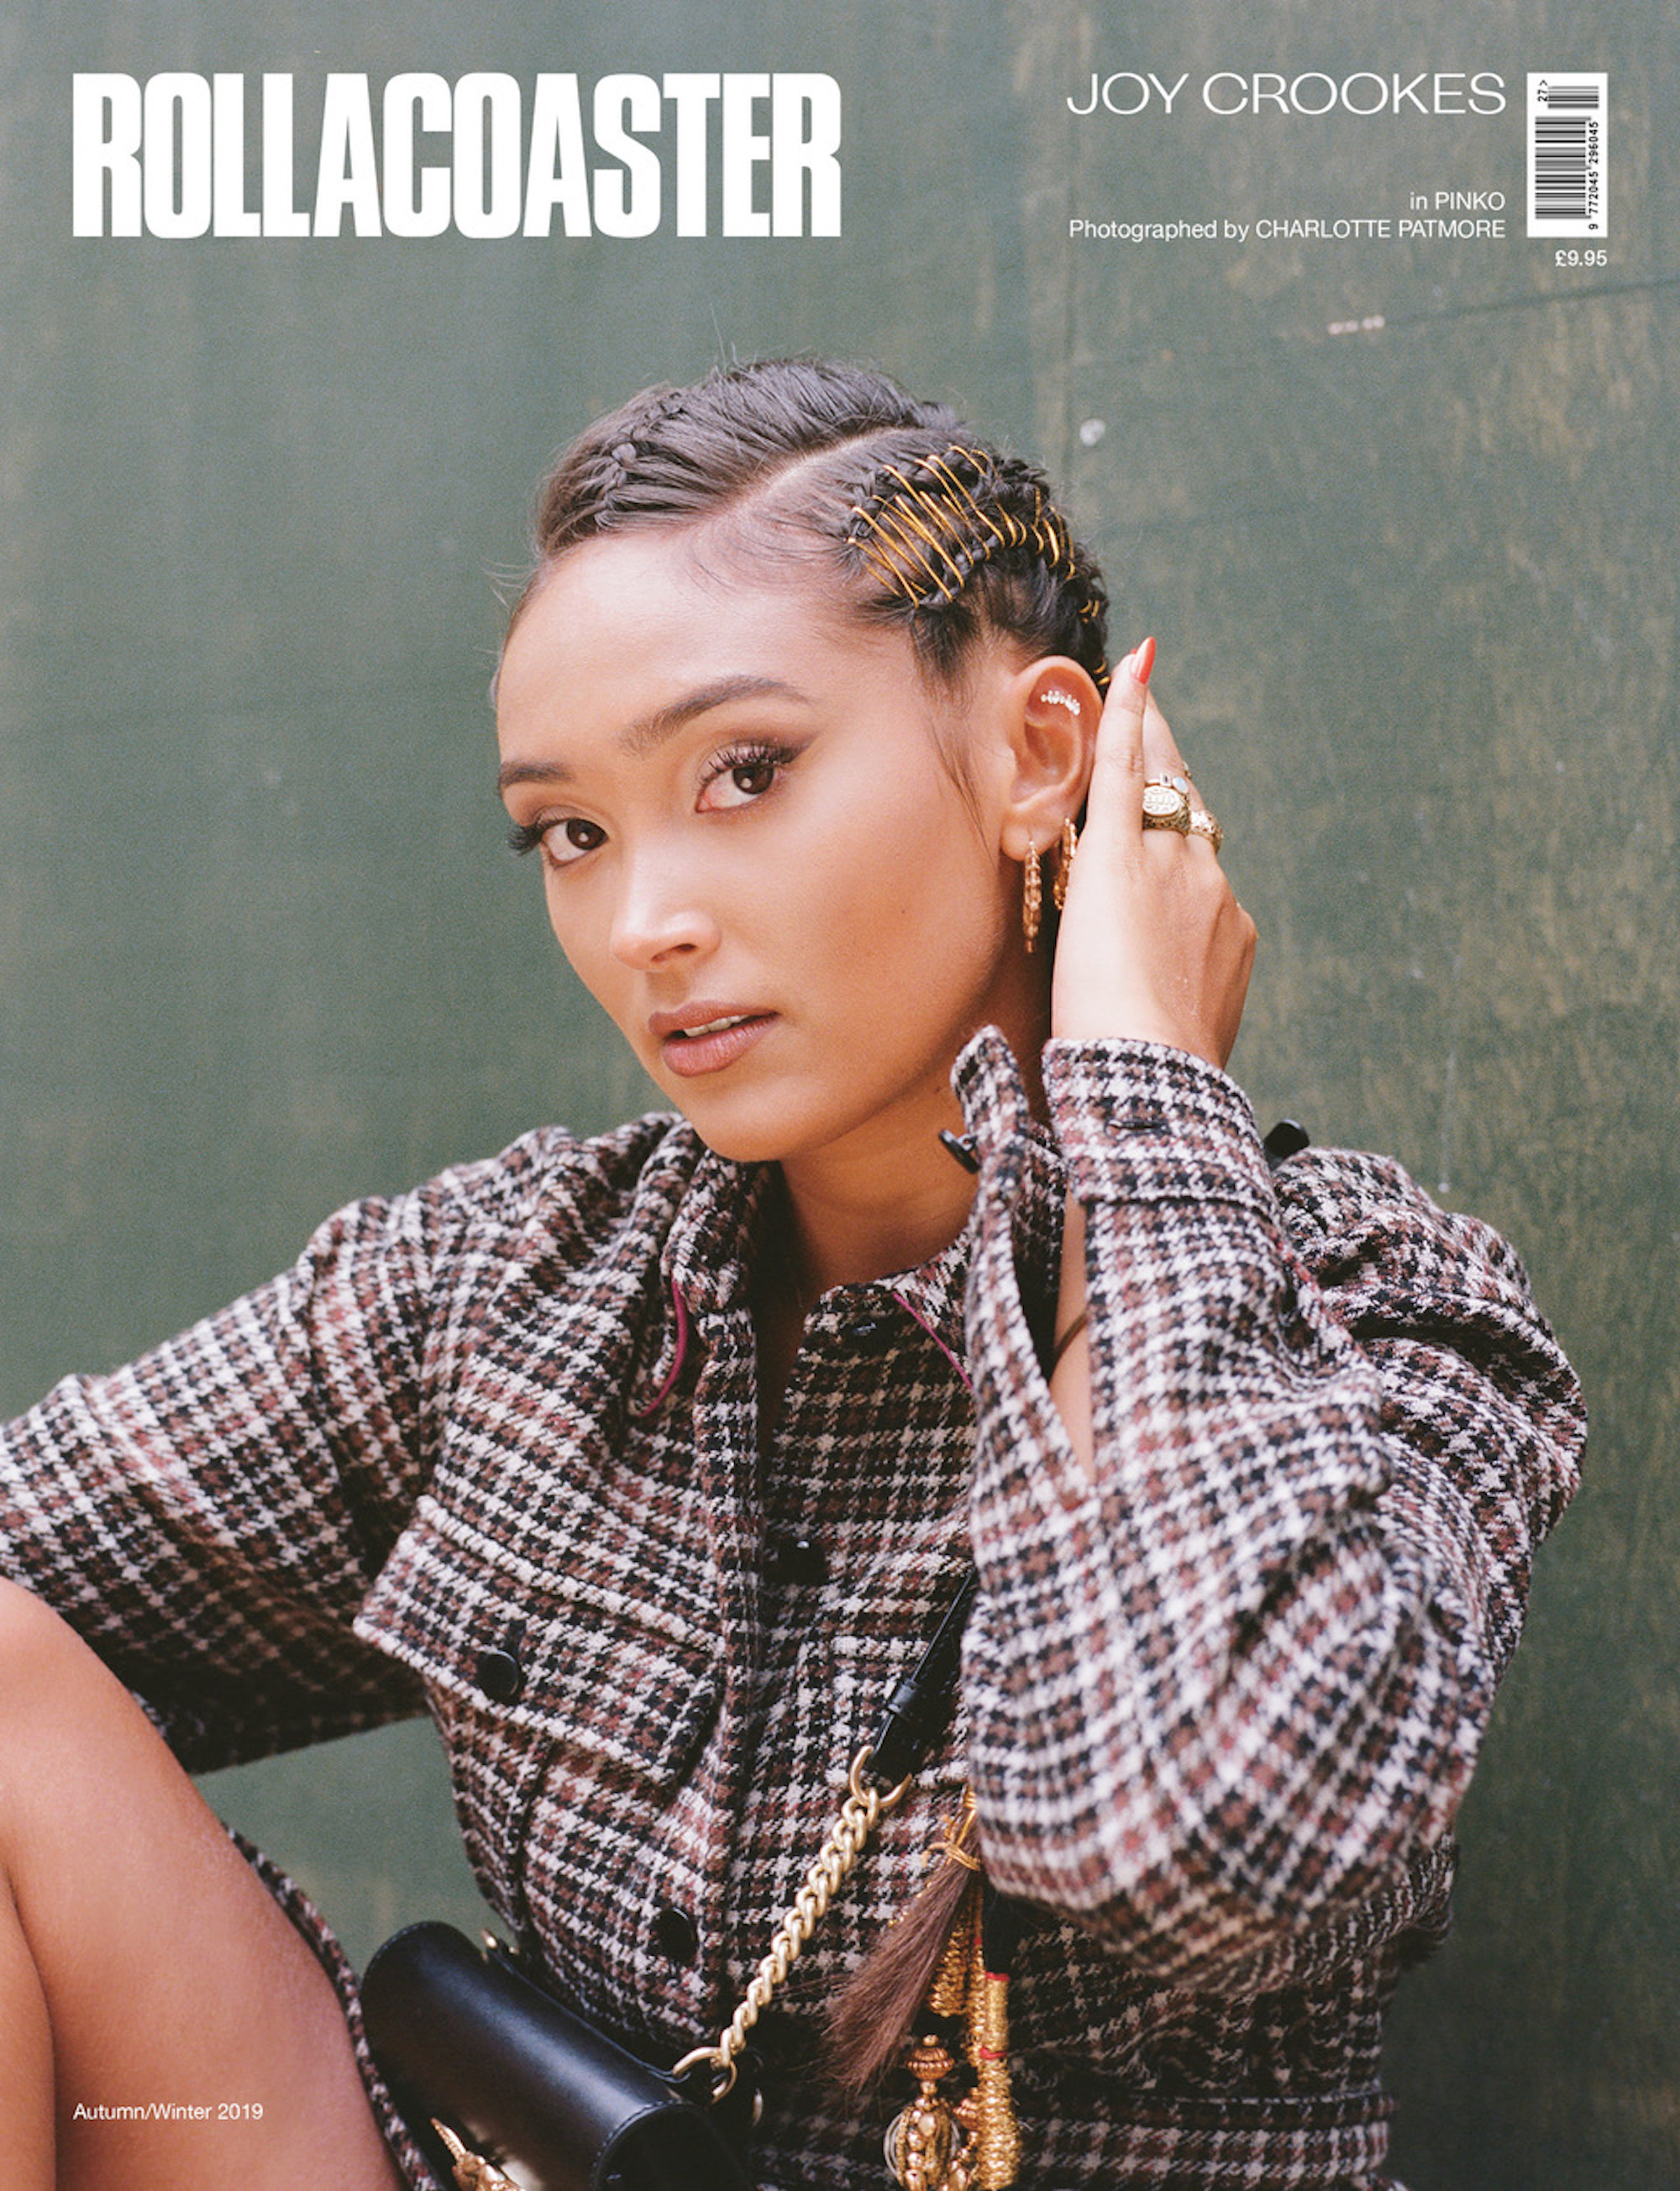 Joy Crookes covers Rollacoaster